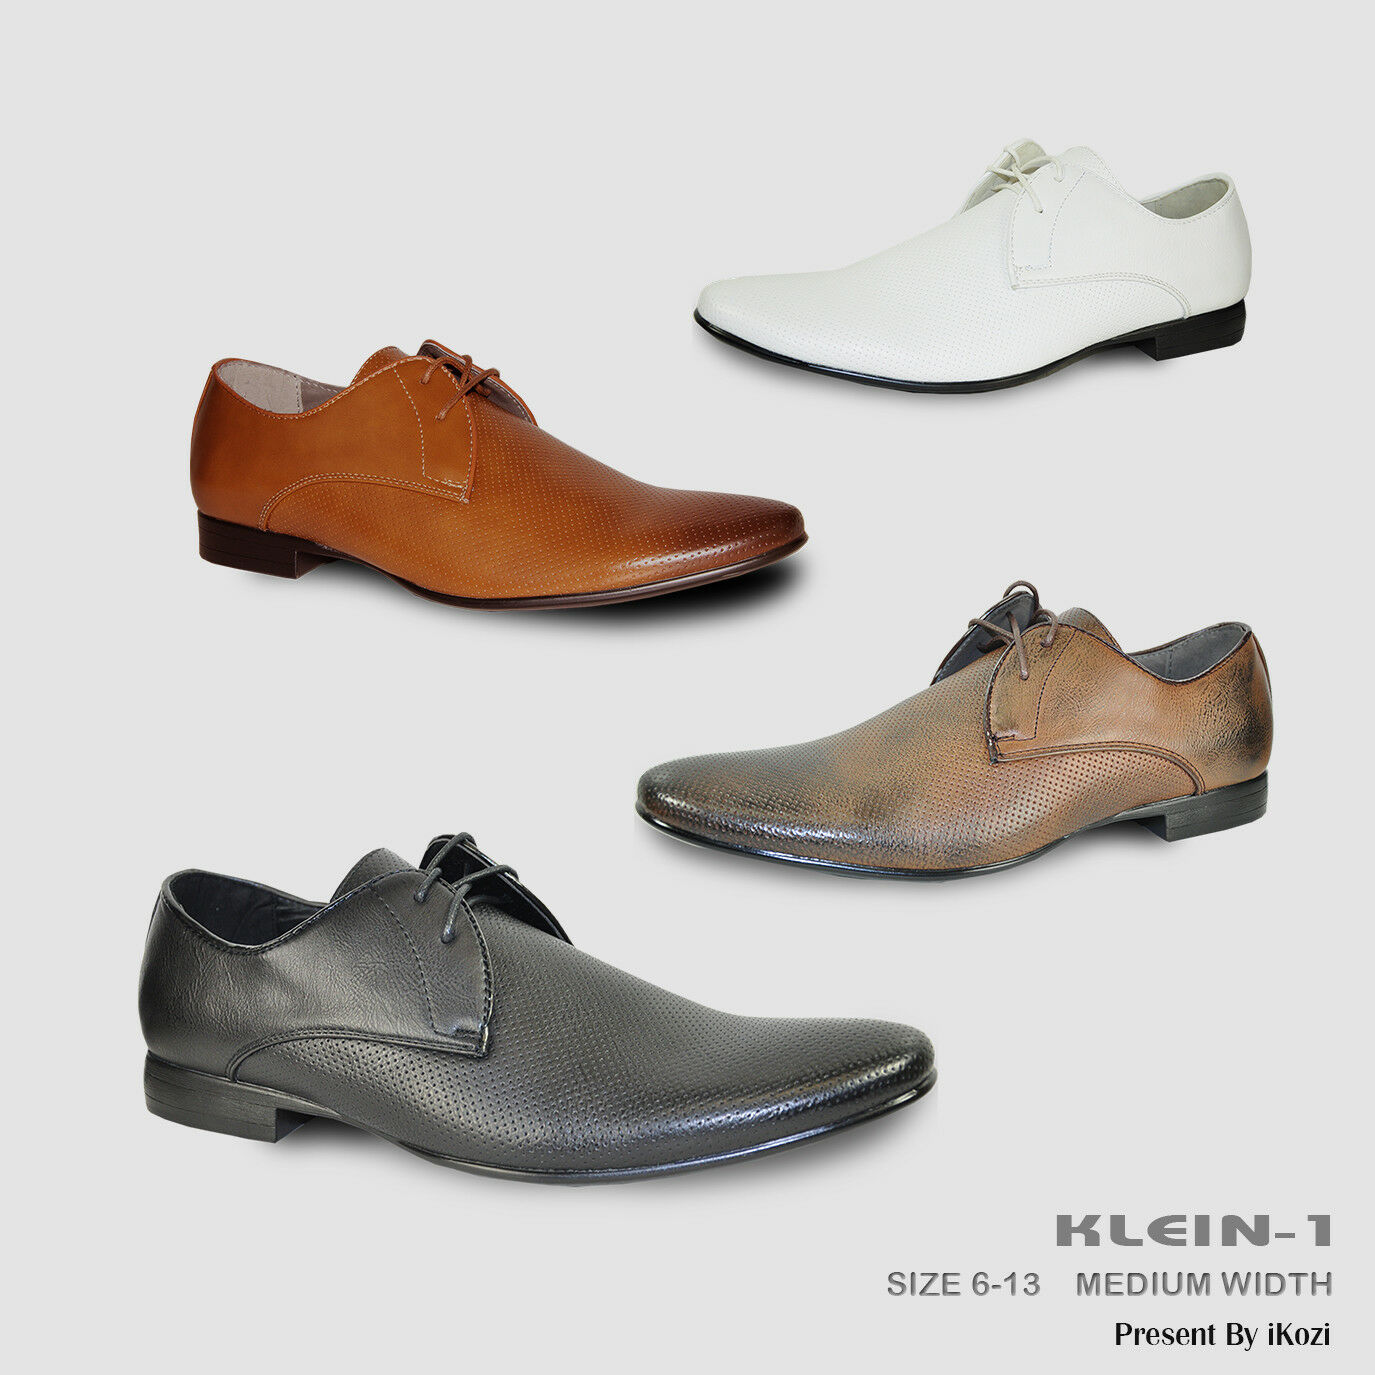 BRAVO New Men Dress Shoes KLEIN-1 Oxford Fashion with Round Plain Toe